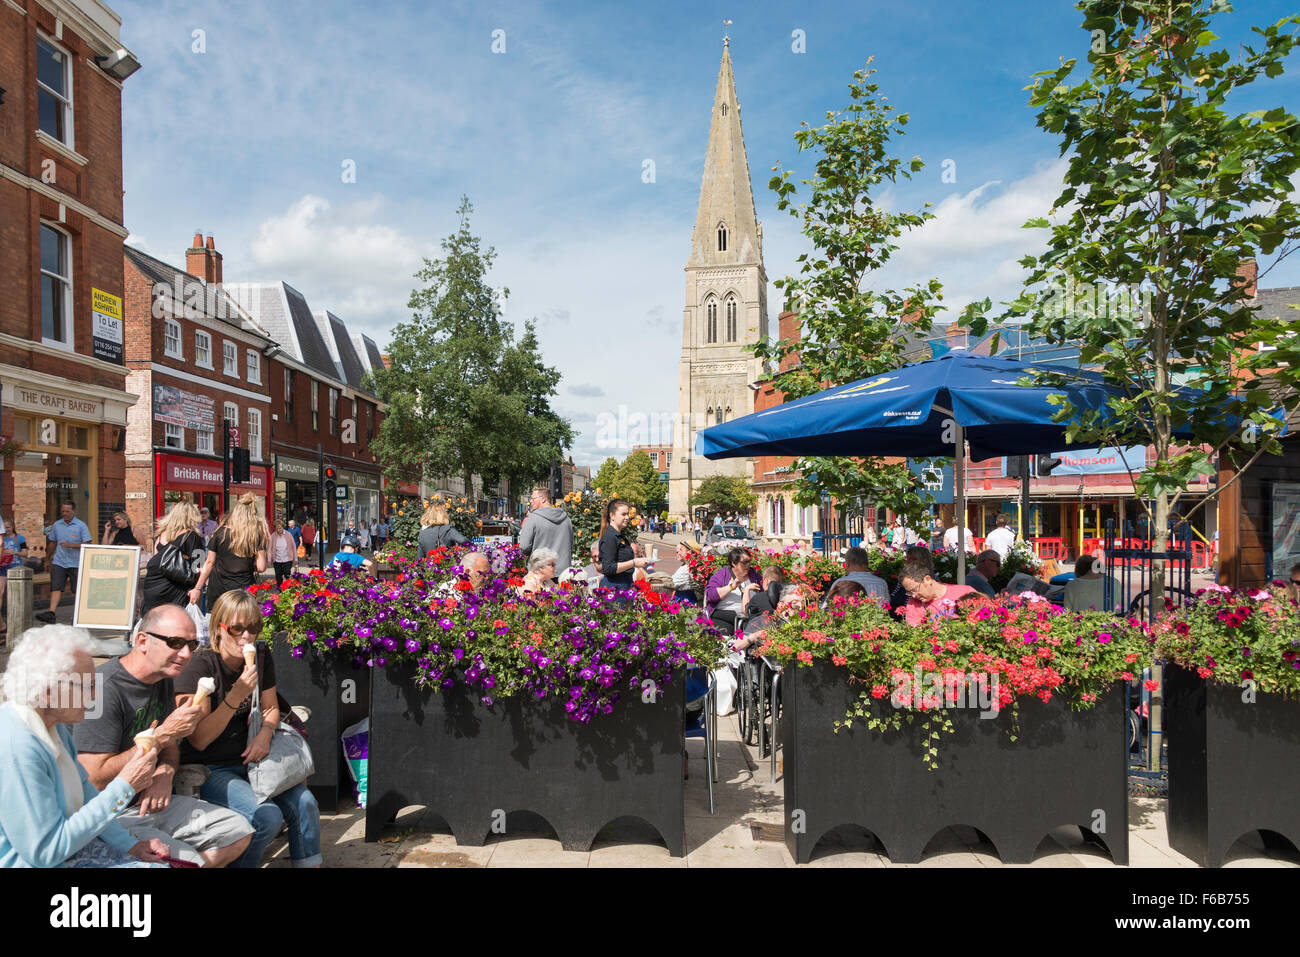 Outdoor restaurant in The Square, Market Harborough, Leicestershire, England, United Kingdom - Stock Image